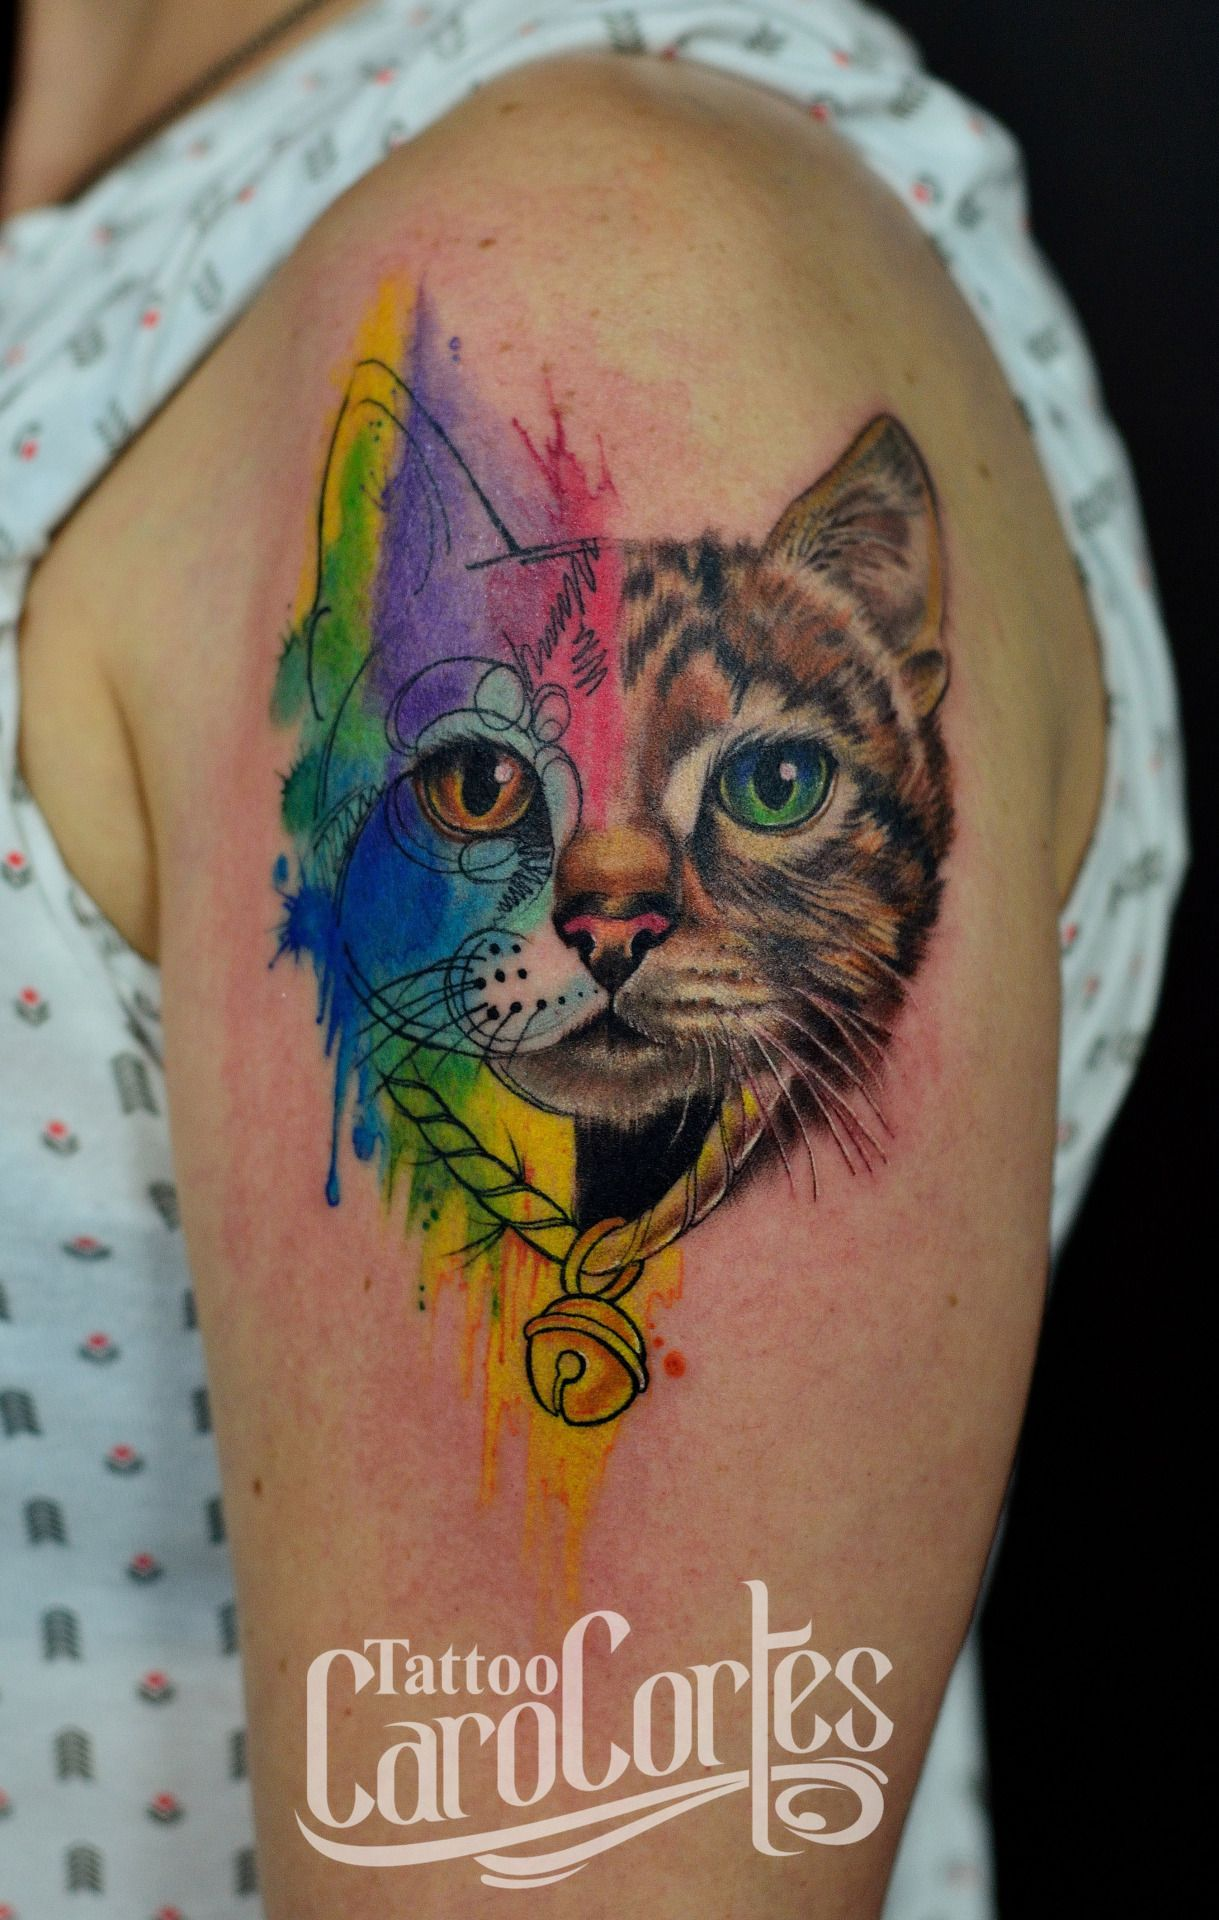 Watercolor tattoo artists in houston texas - Realism Watercolor Cat Gato Realista Y Acuarelado Caro Cortes Colombian Tattoo Artist Www